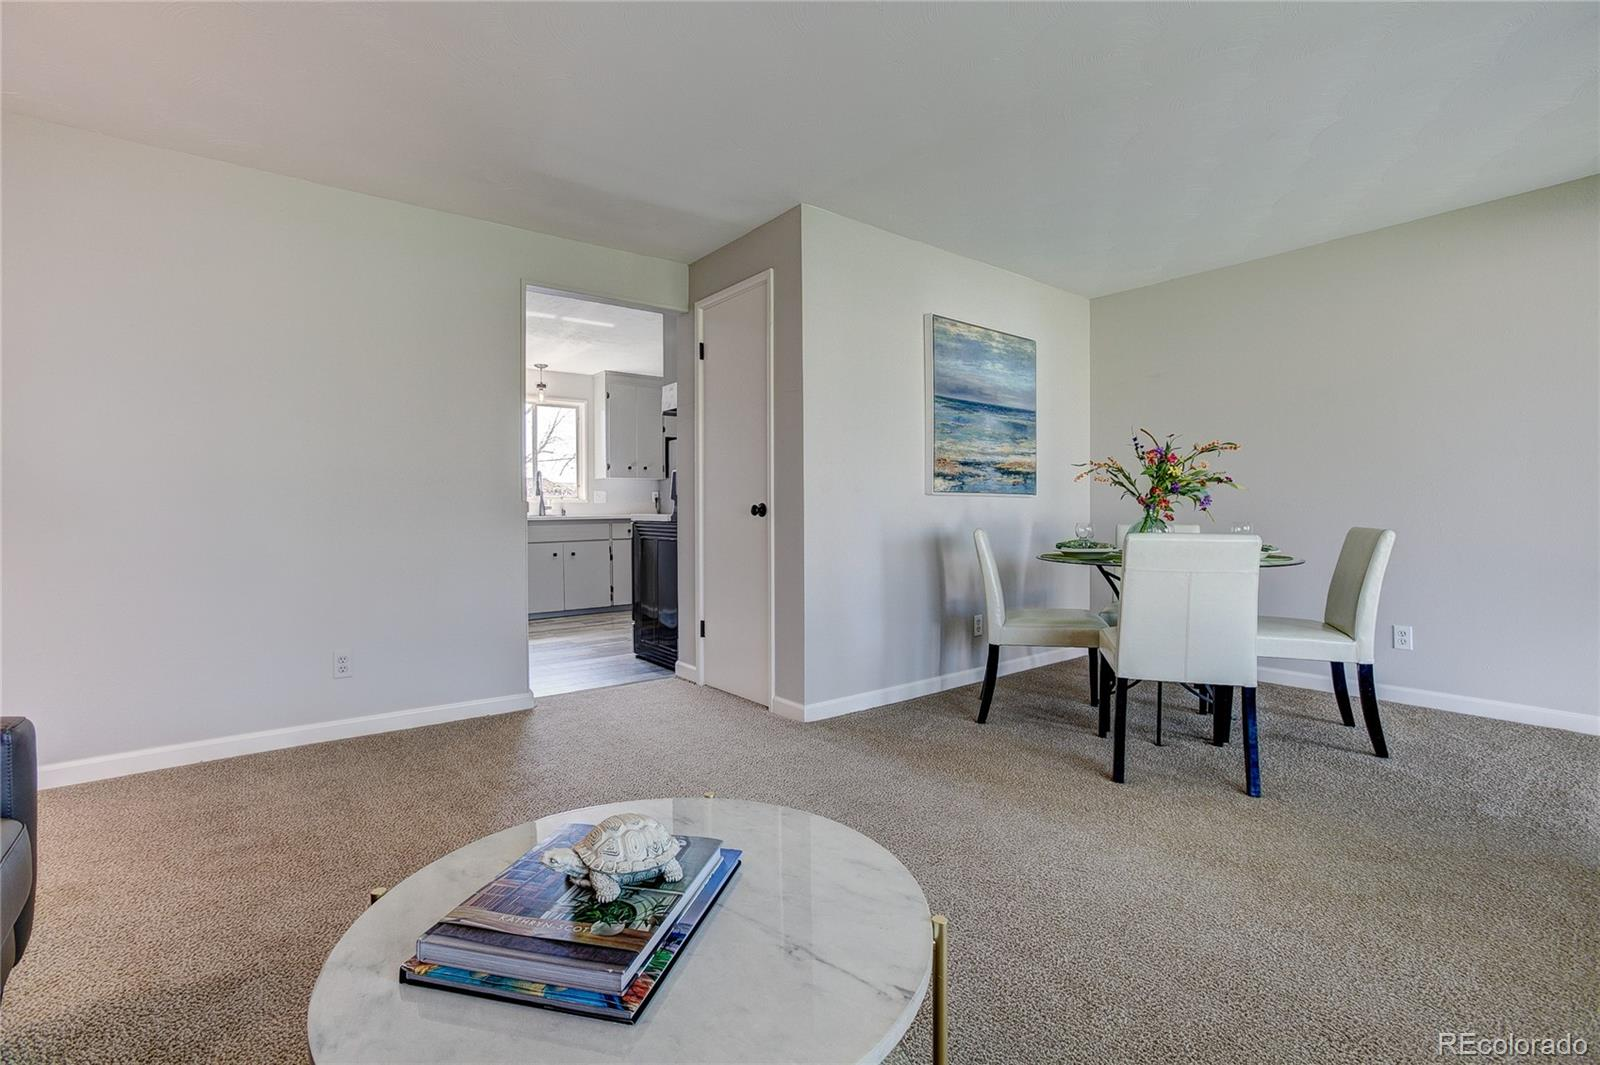 MLS# 9710462 - 6 - 1250 W 7th Ave Dr, Broomfield, CO 80020